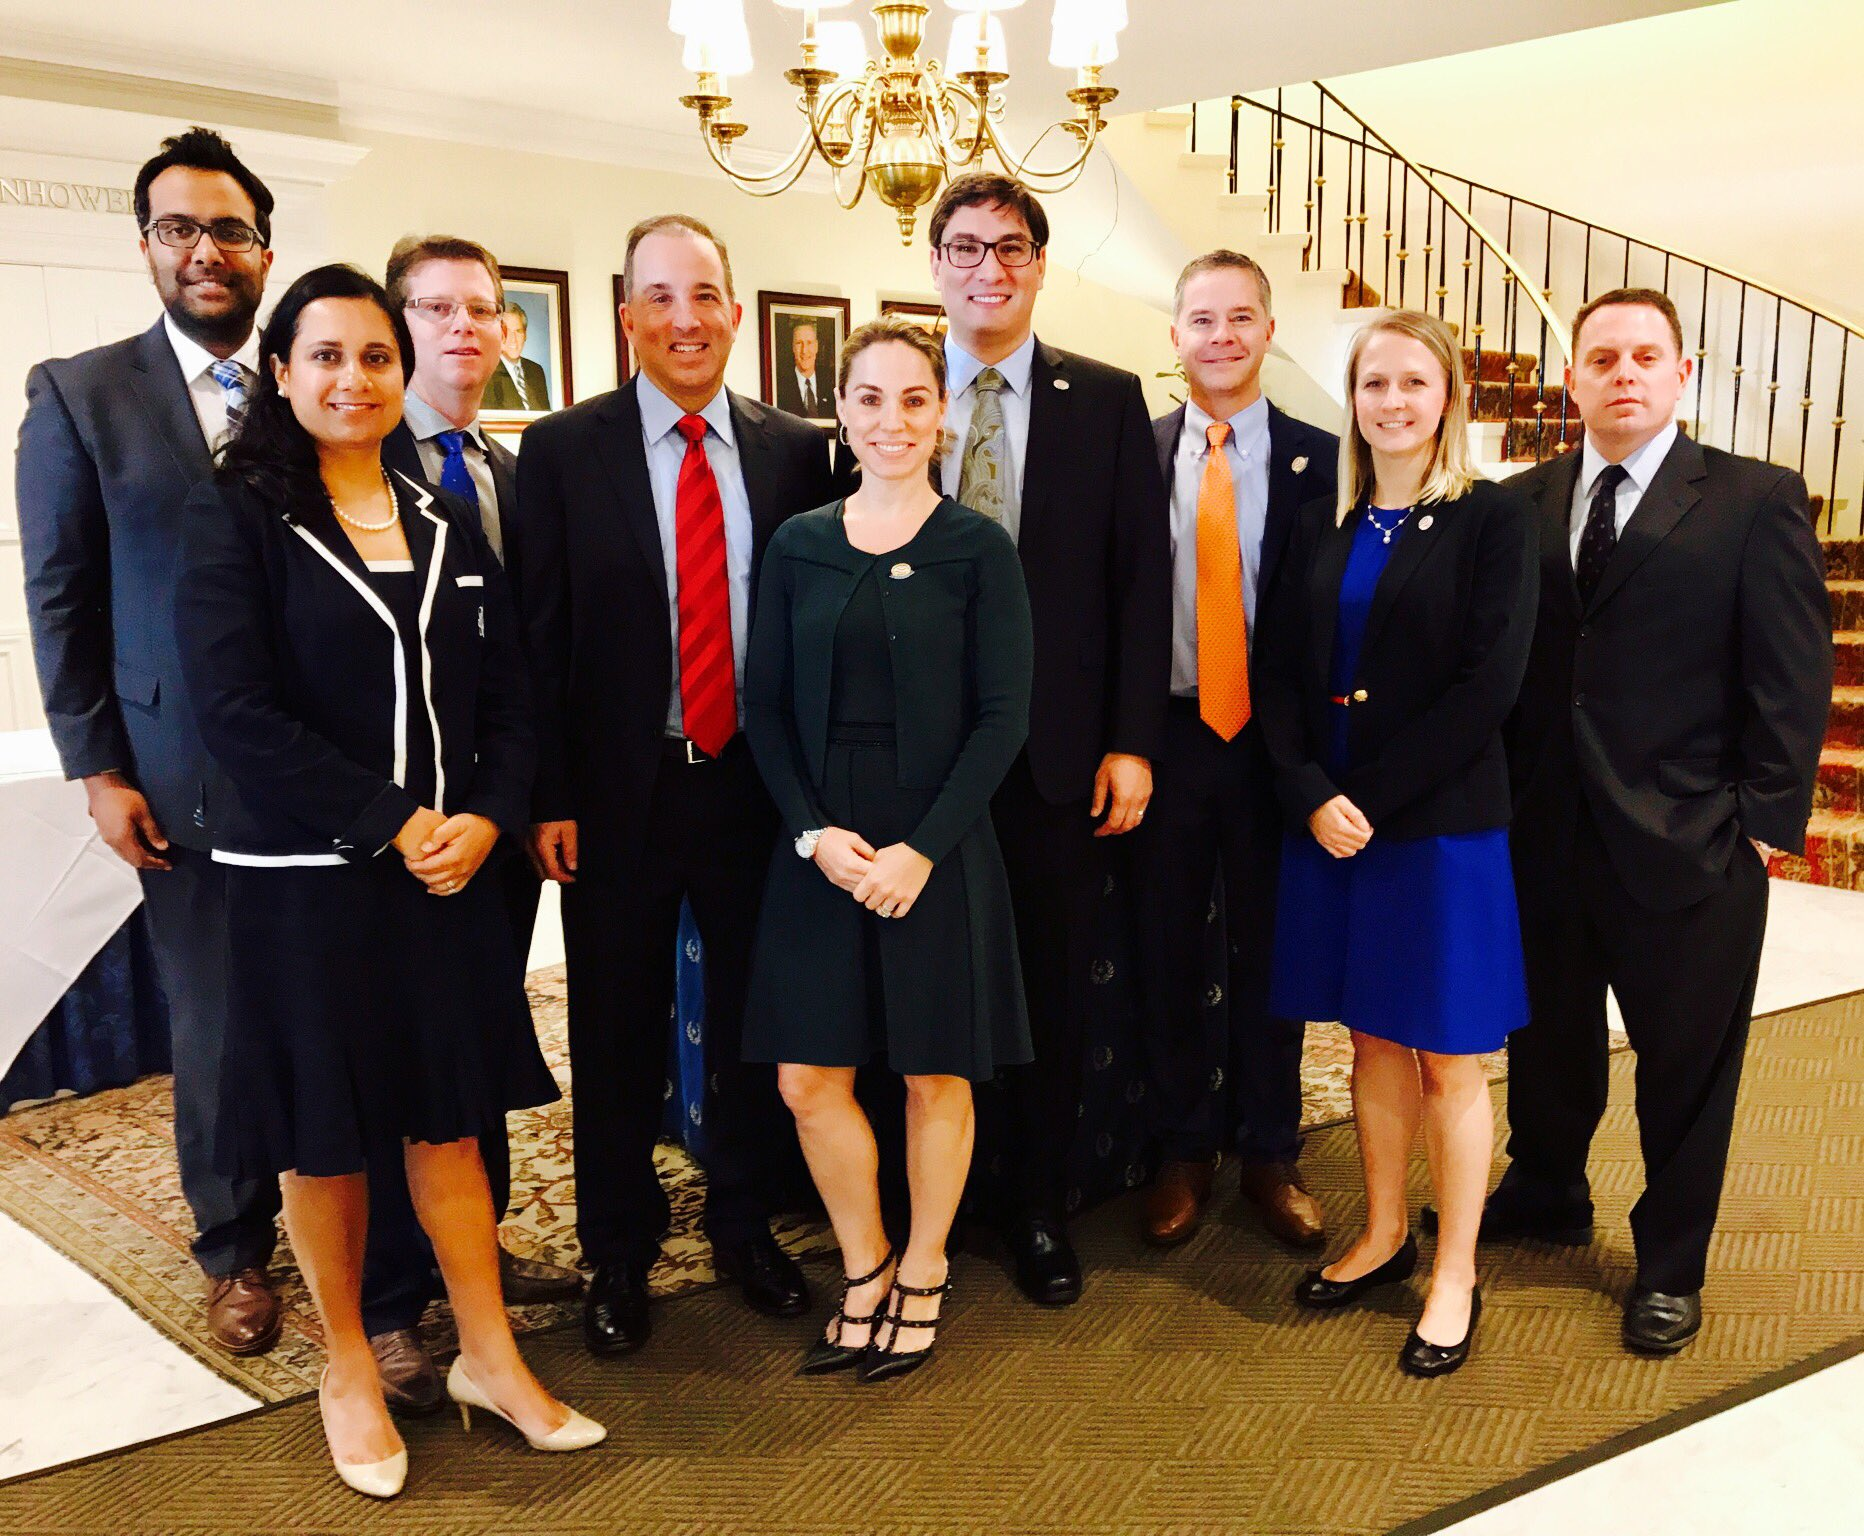 Strong group of advocates representing #NewJersey on Capitol Hil! #ACR2017 #Radiology https://t.co/82g1fx1511